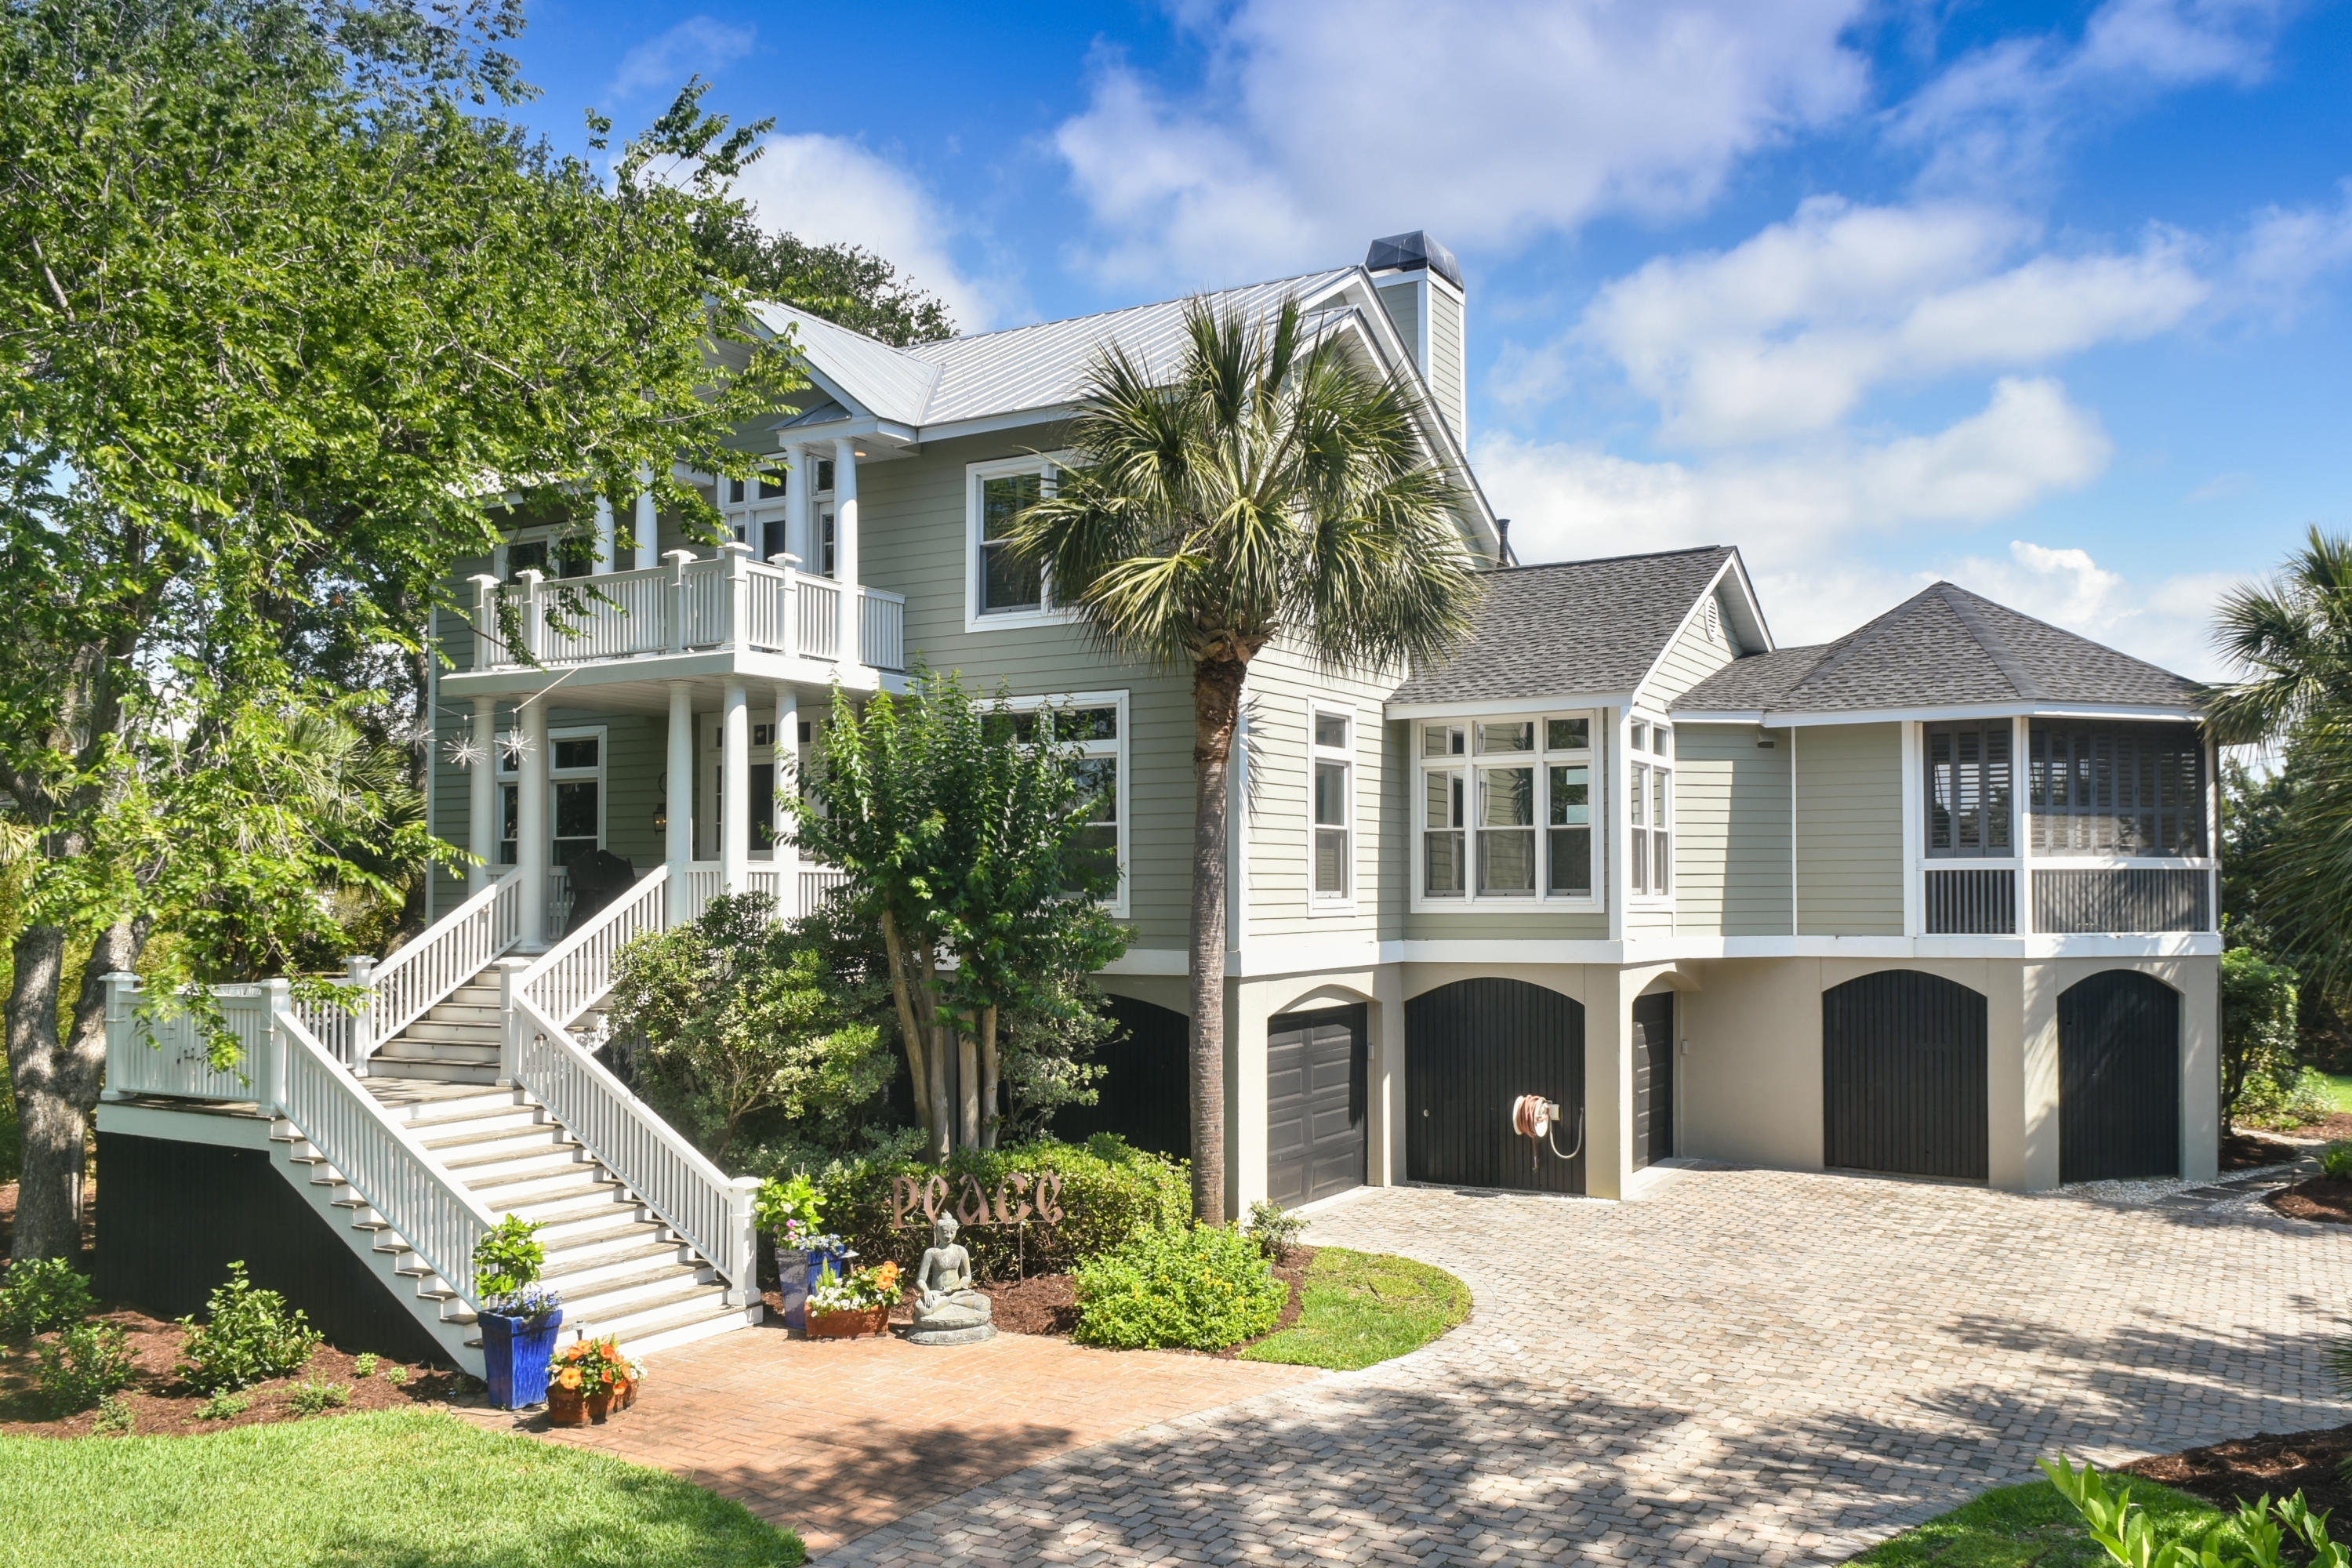 Sullivans Island Homes For Sale - 405 Station 12, Sullivans Island, SC - 45